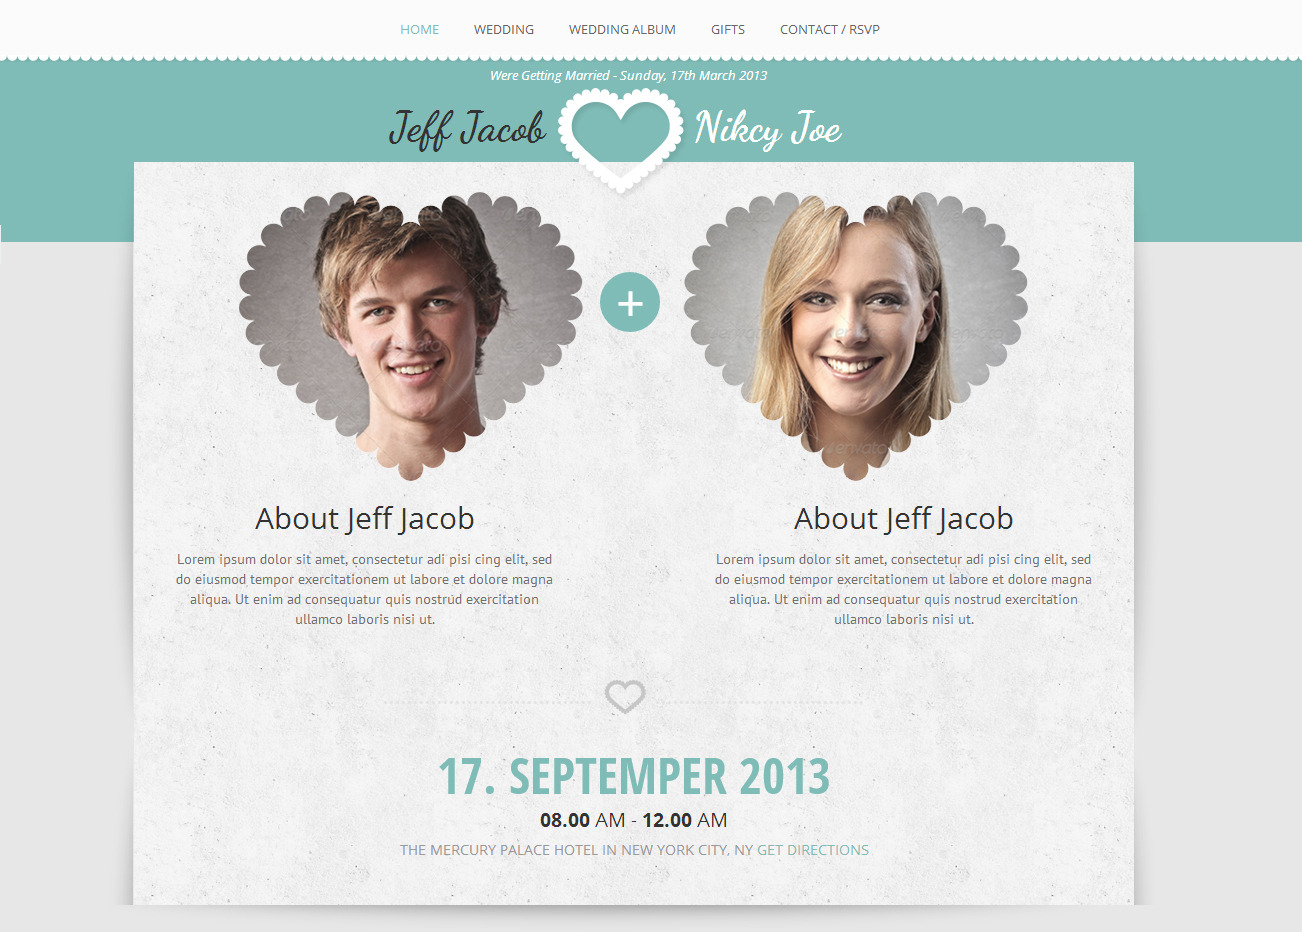 Wedding Slide Responsive Wedding Invite Template By AccuraThemes - Wedding invitations template online